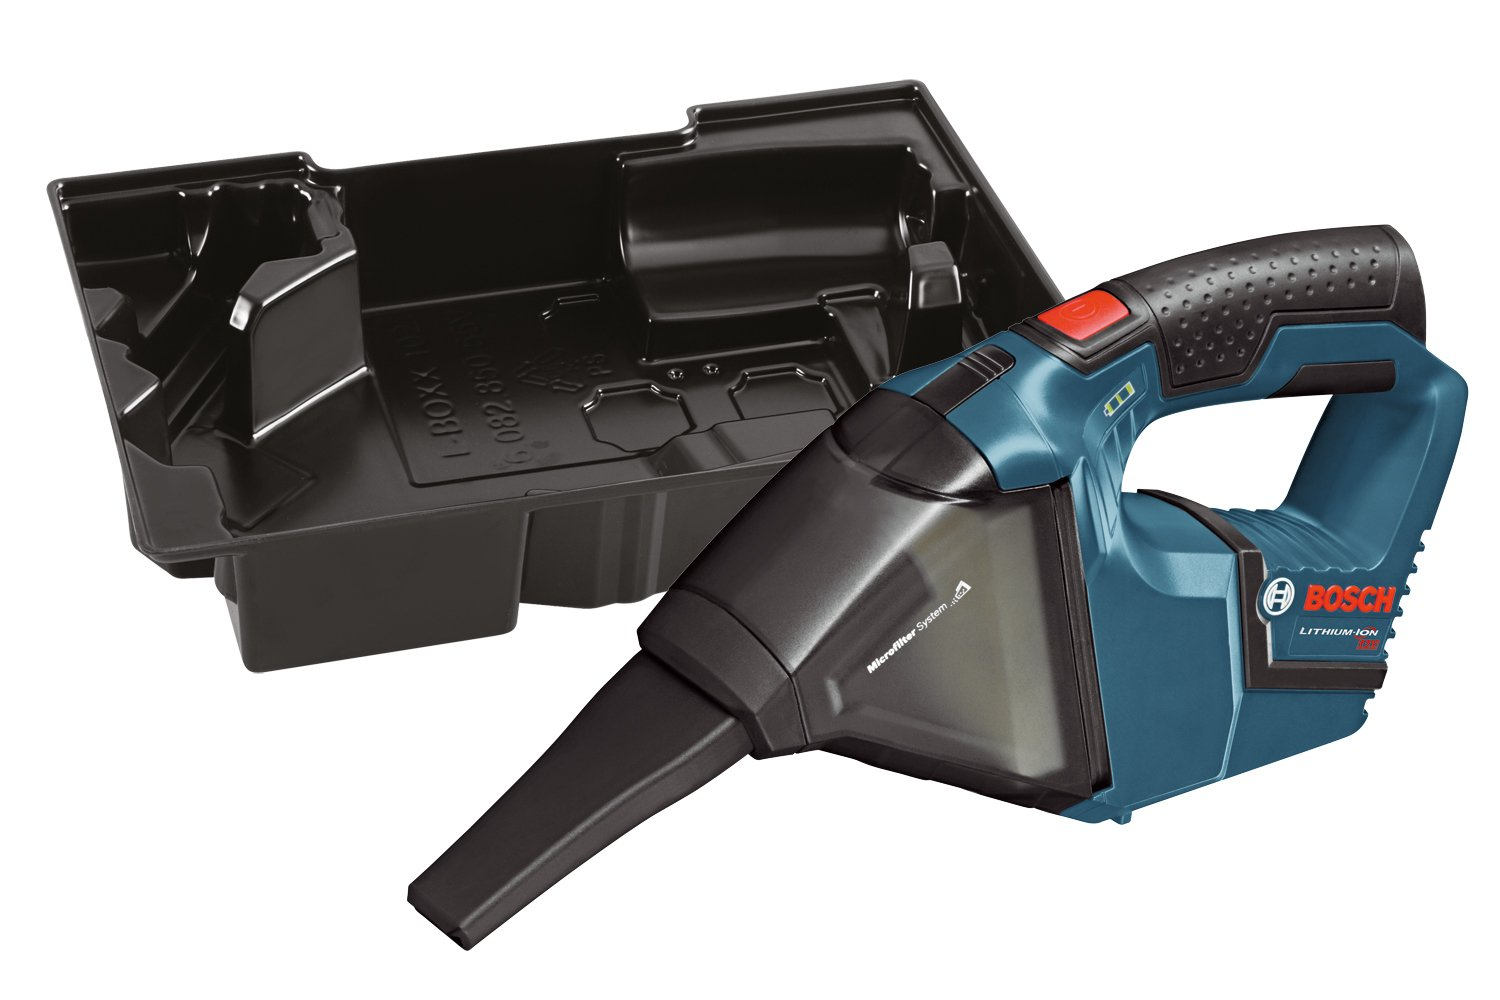 Bosch Power Tools VAC120BN 12-Volt Cordless Vacuum Bare Tool with Insert Tray